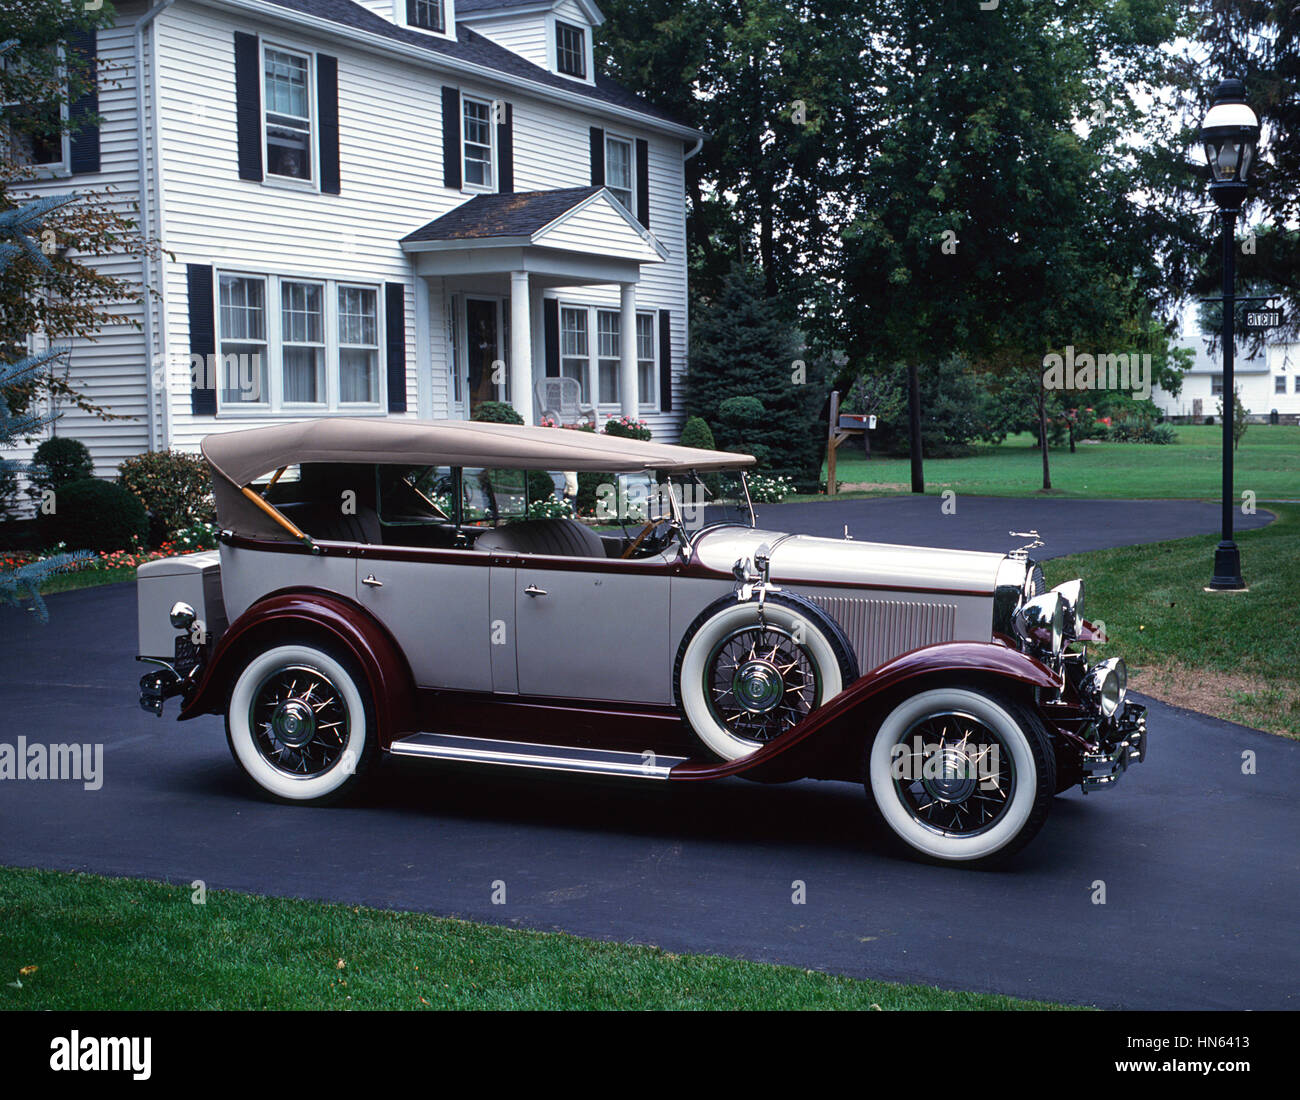 1930 Buick series 40 - Stock Image